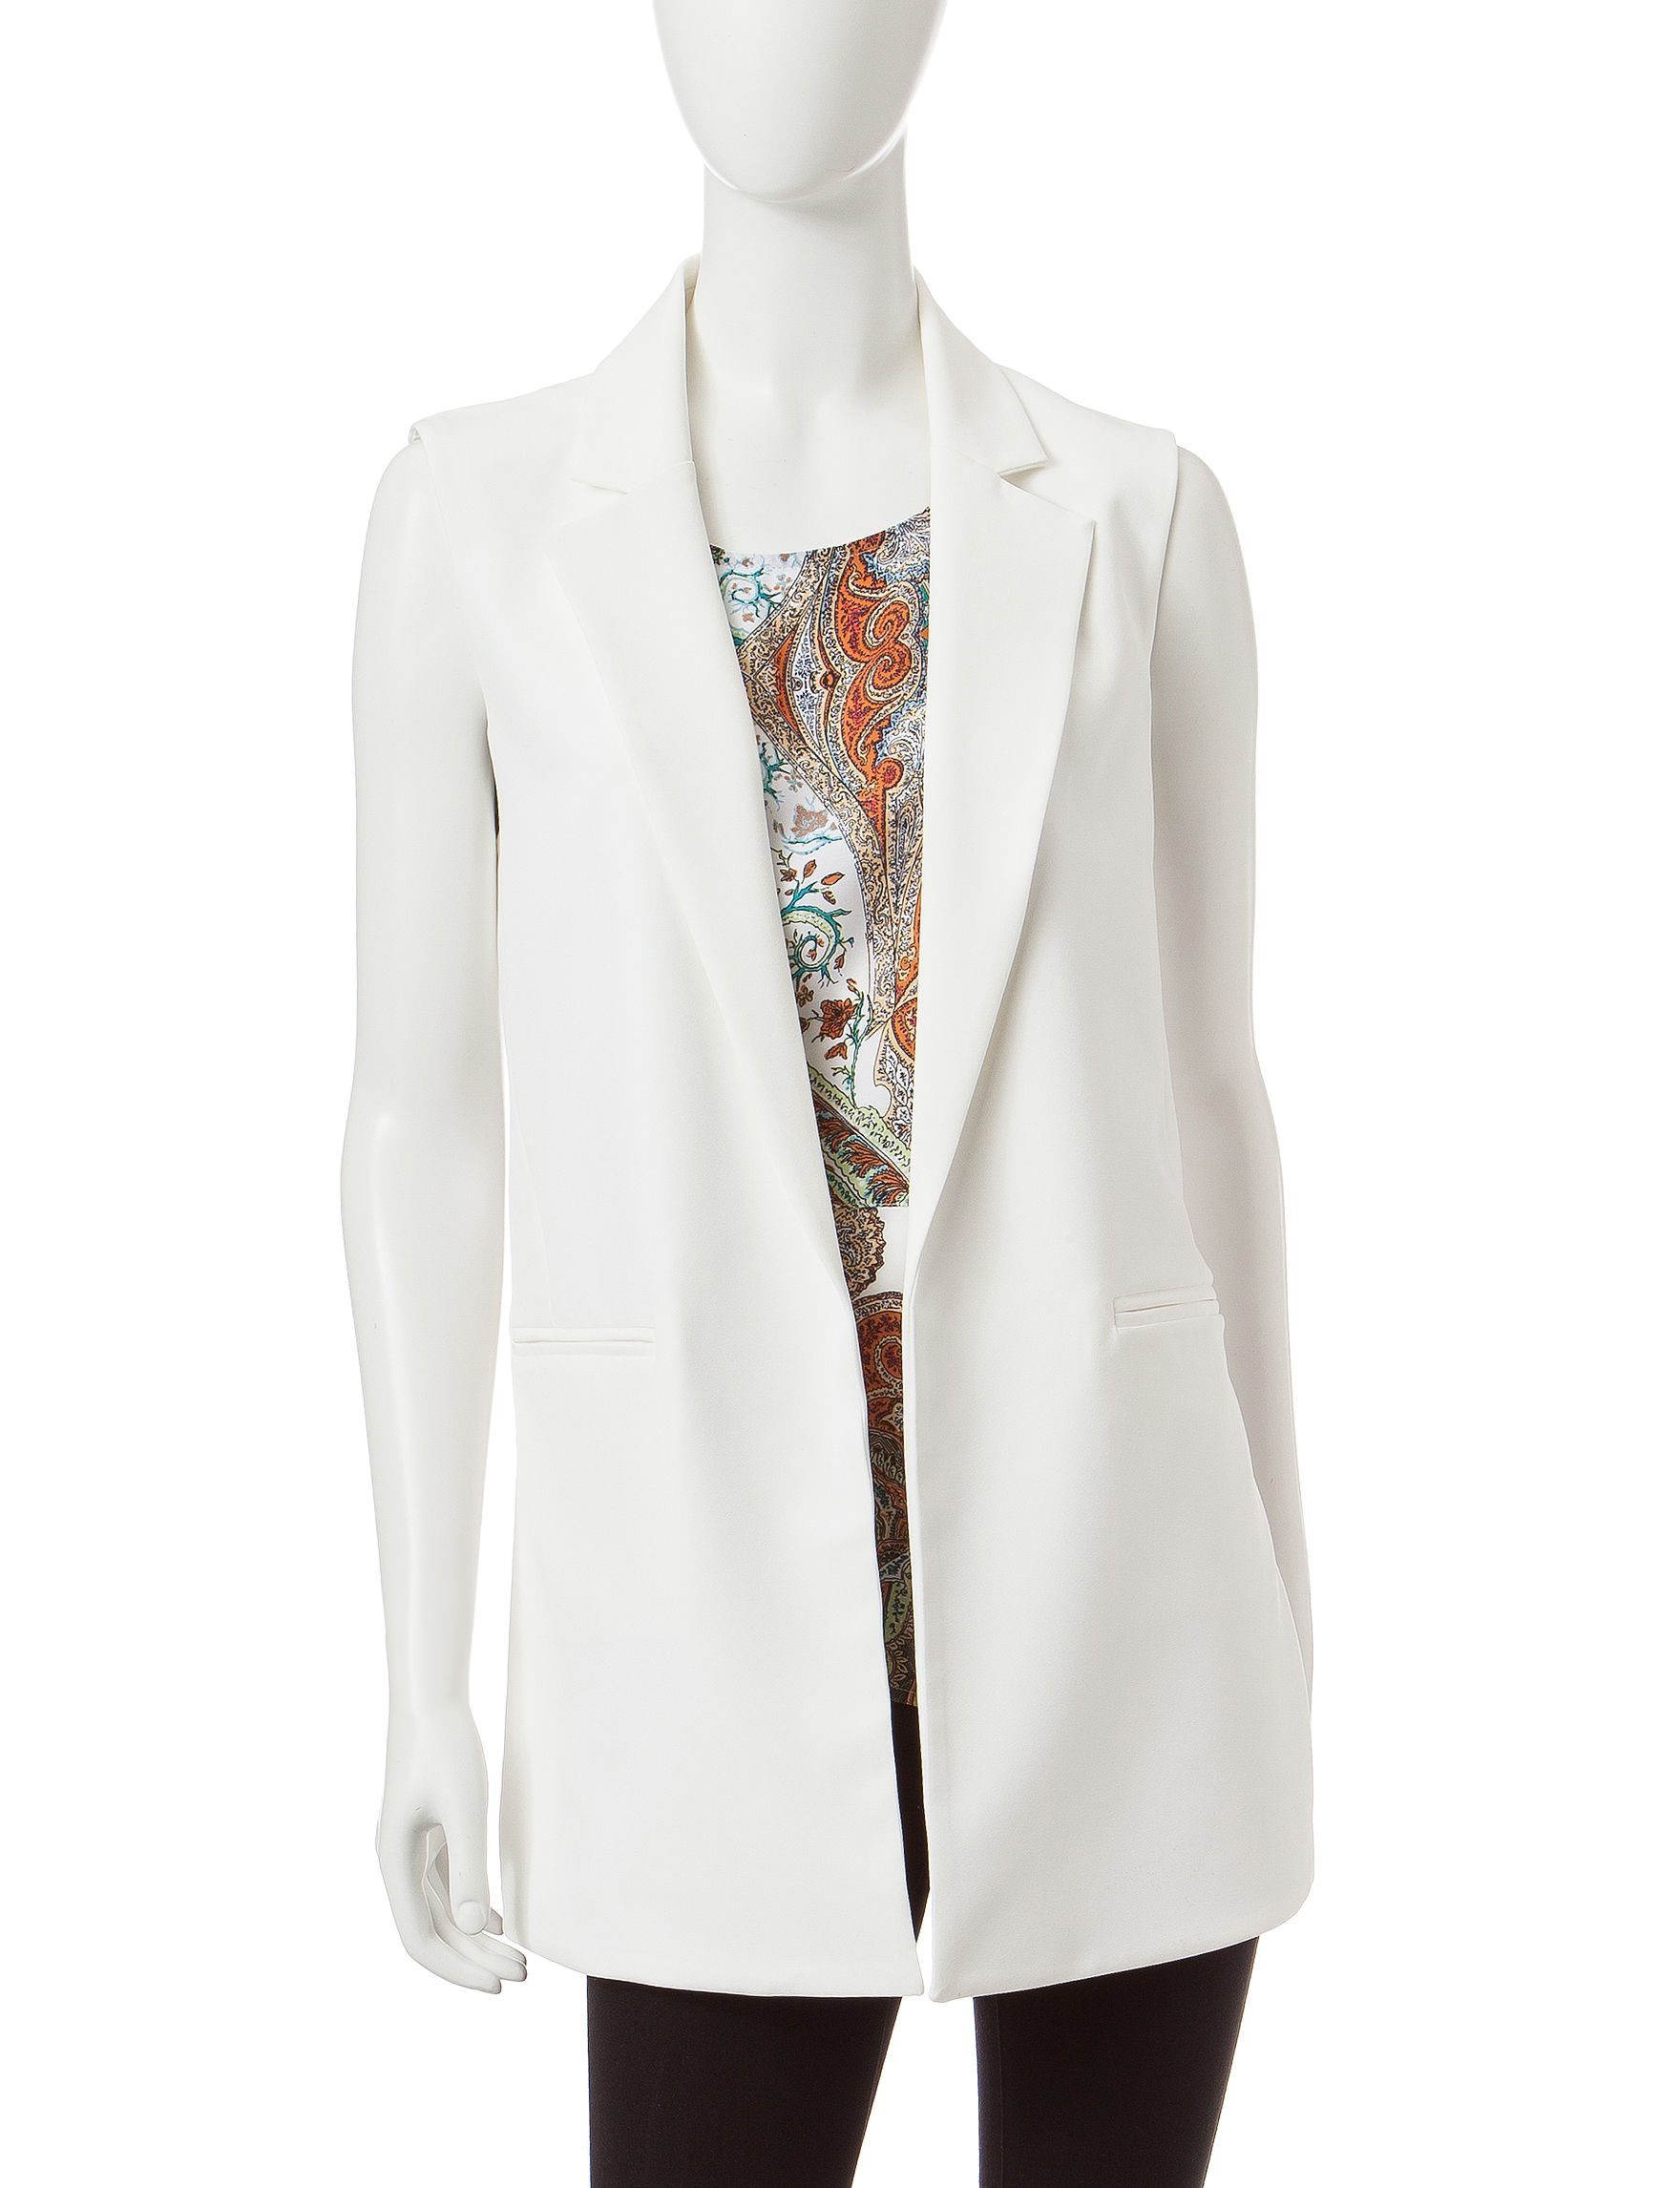 ABS by Allen Schwartz White Lightweight Jackets & Blazers